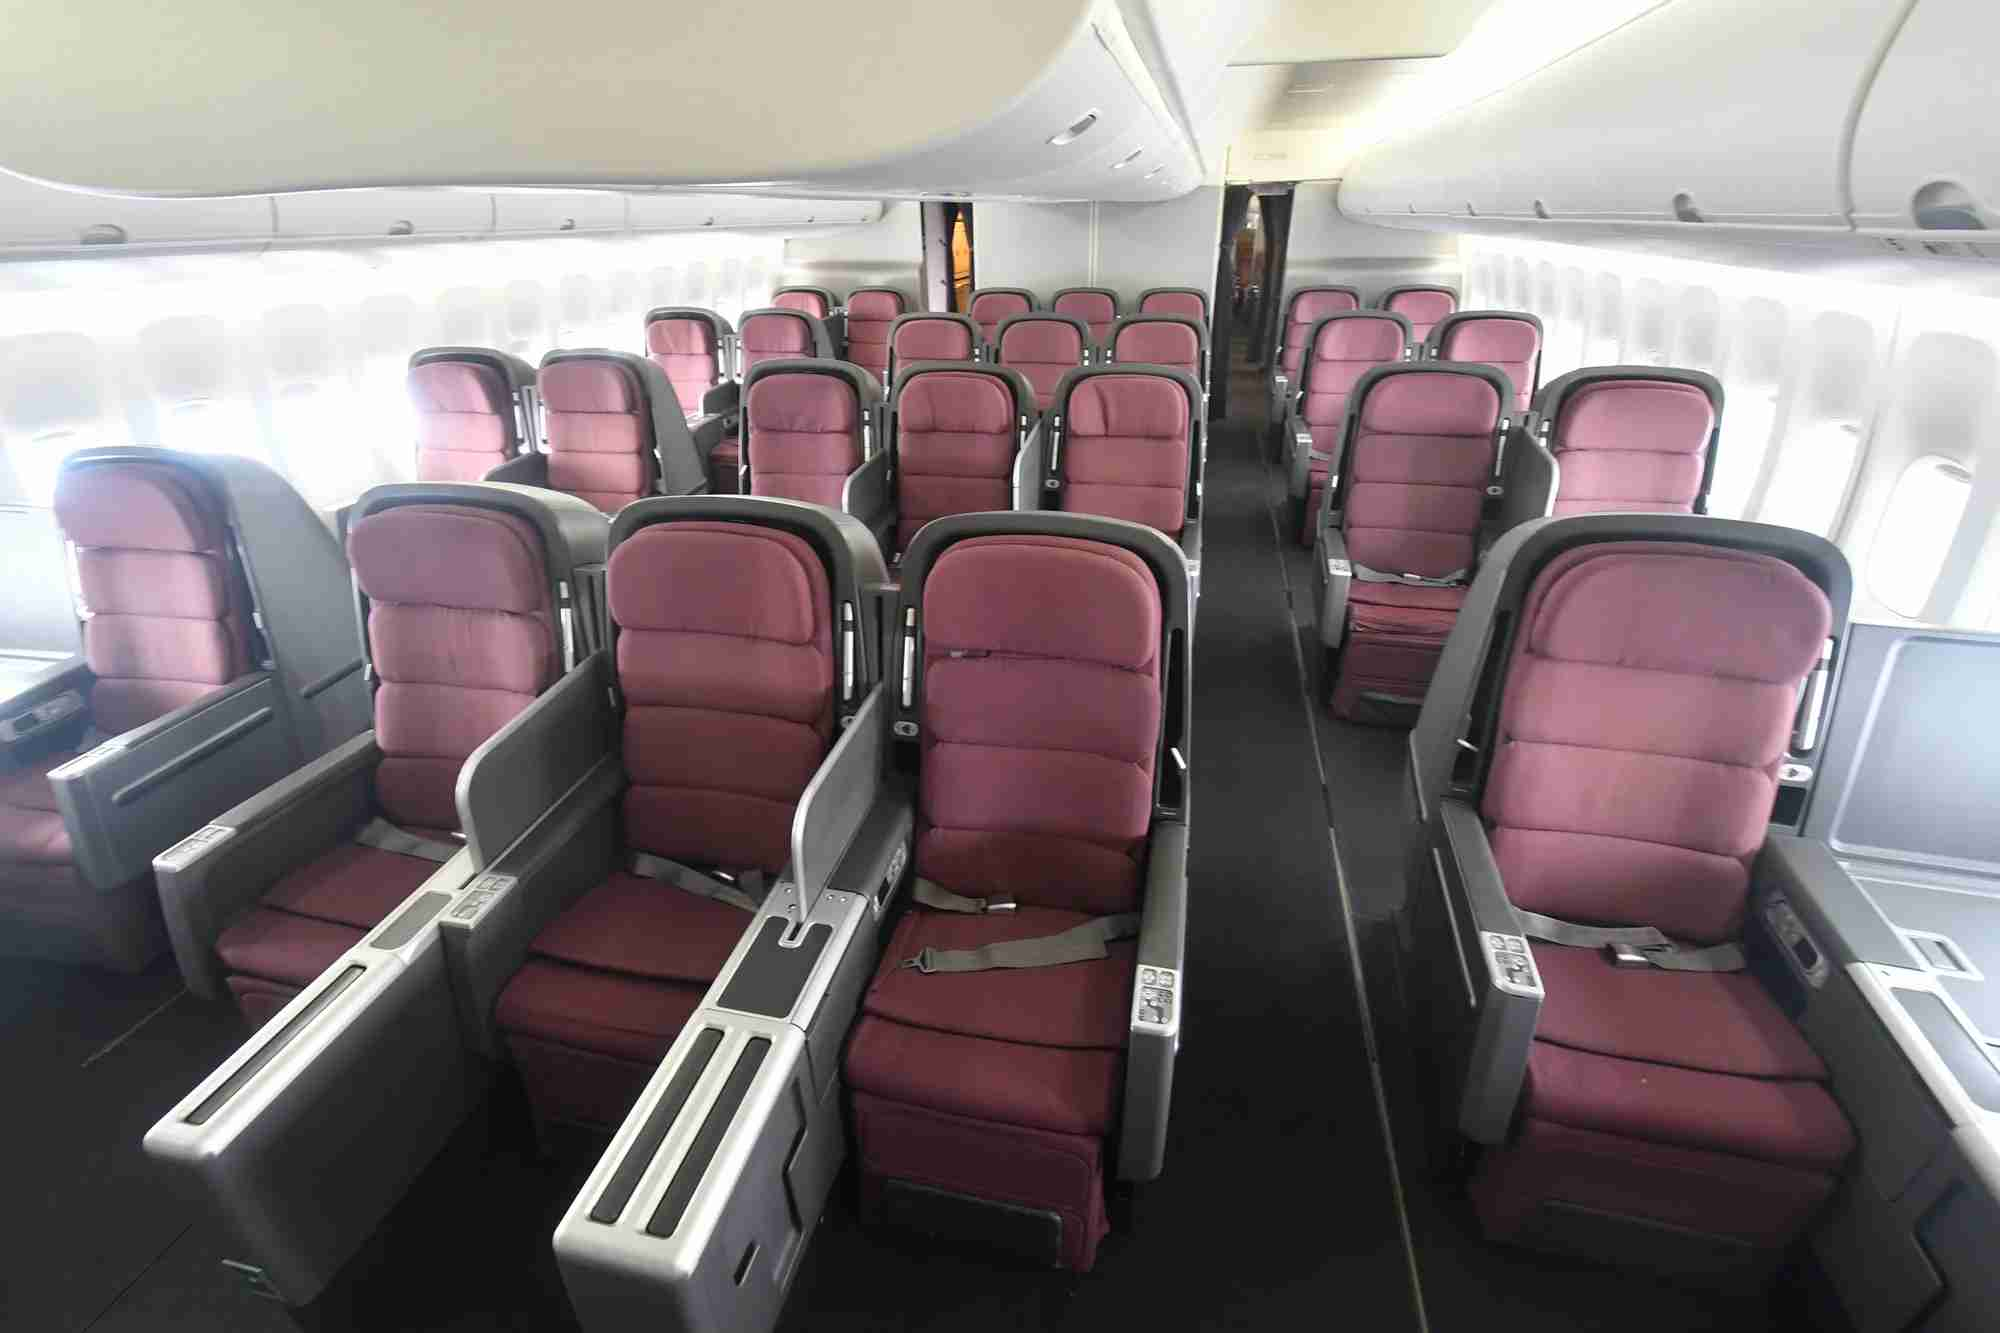 The business class cabin of a Qantas 747. (Photo by Alberto Riva/The Points Guy)